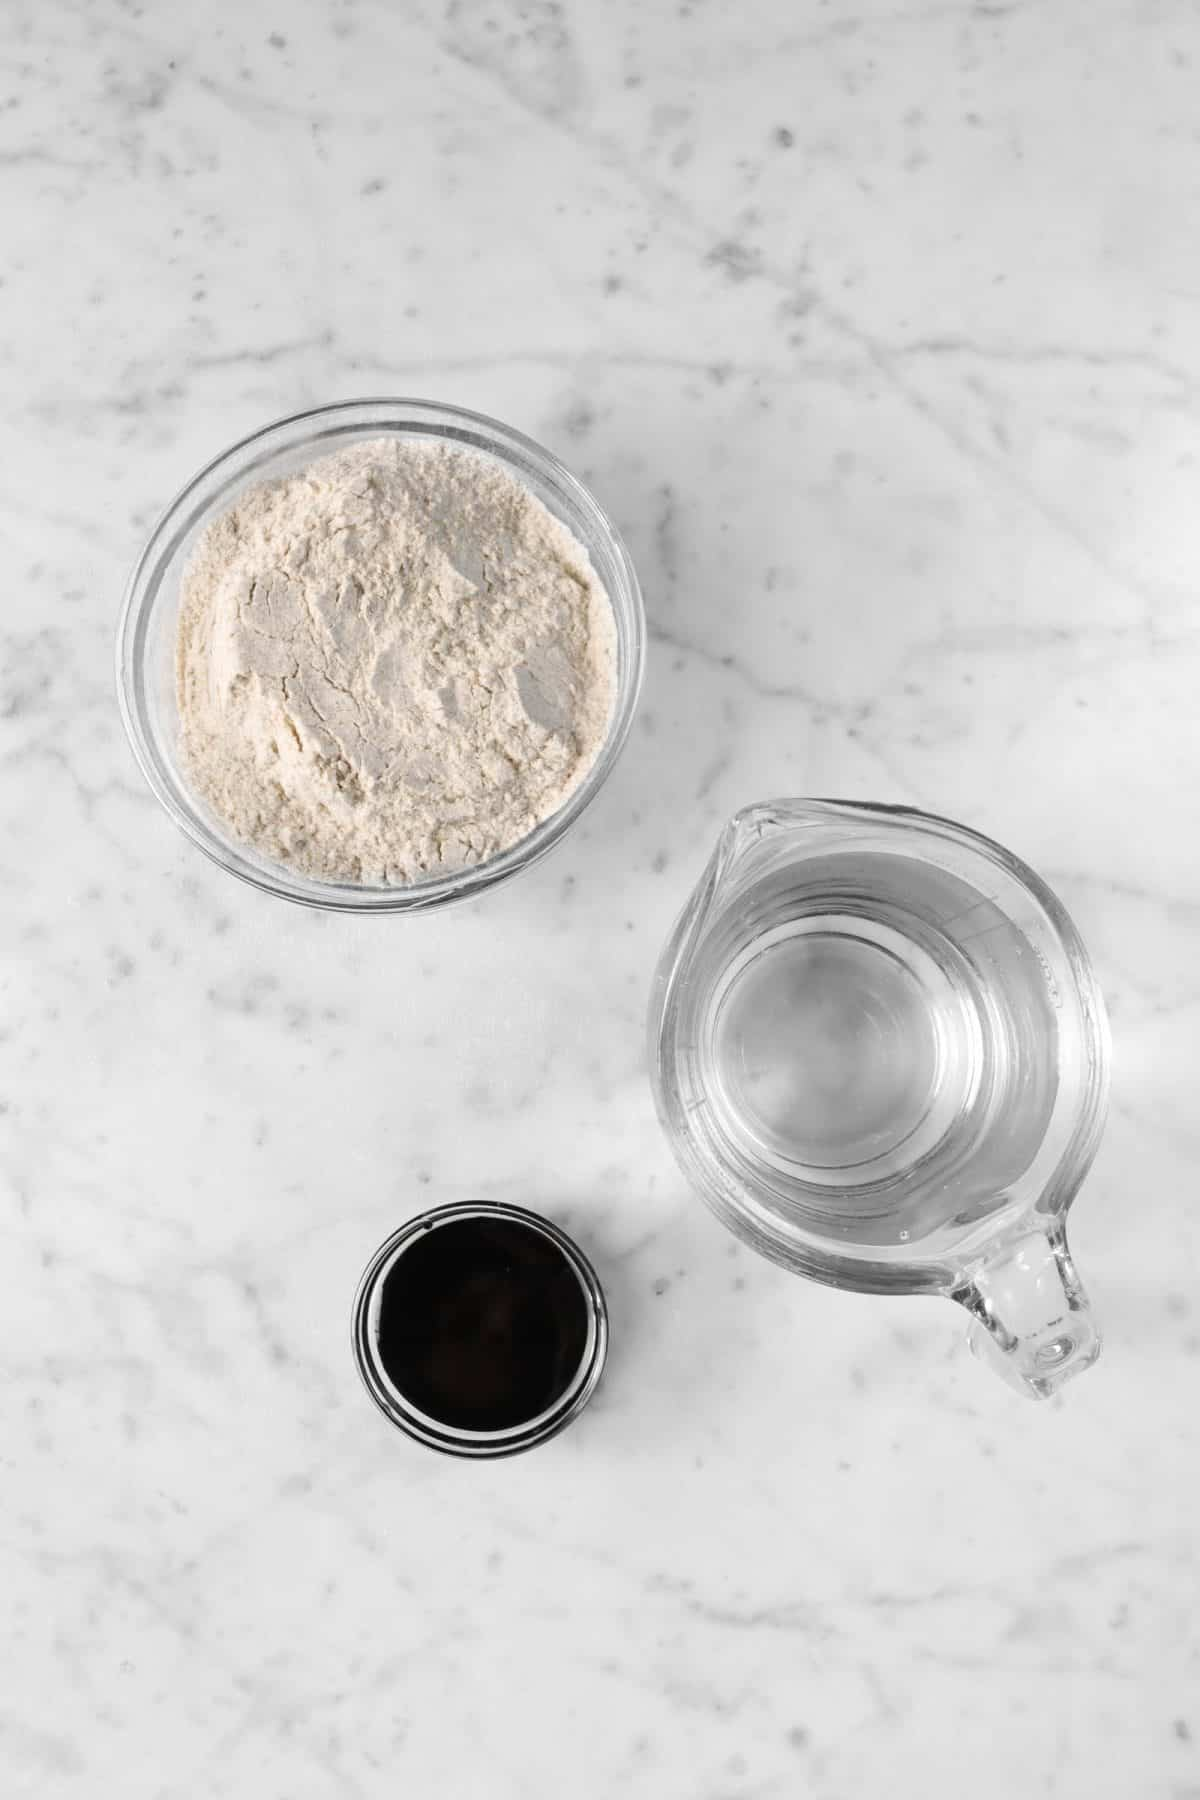 ingredients for sourdough starter on a marble counter